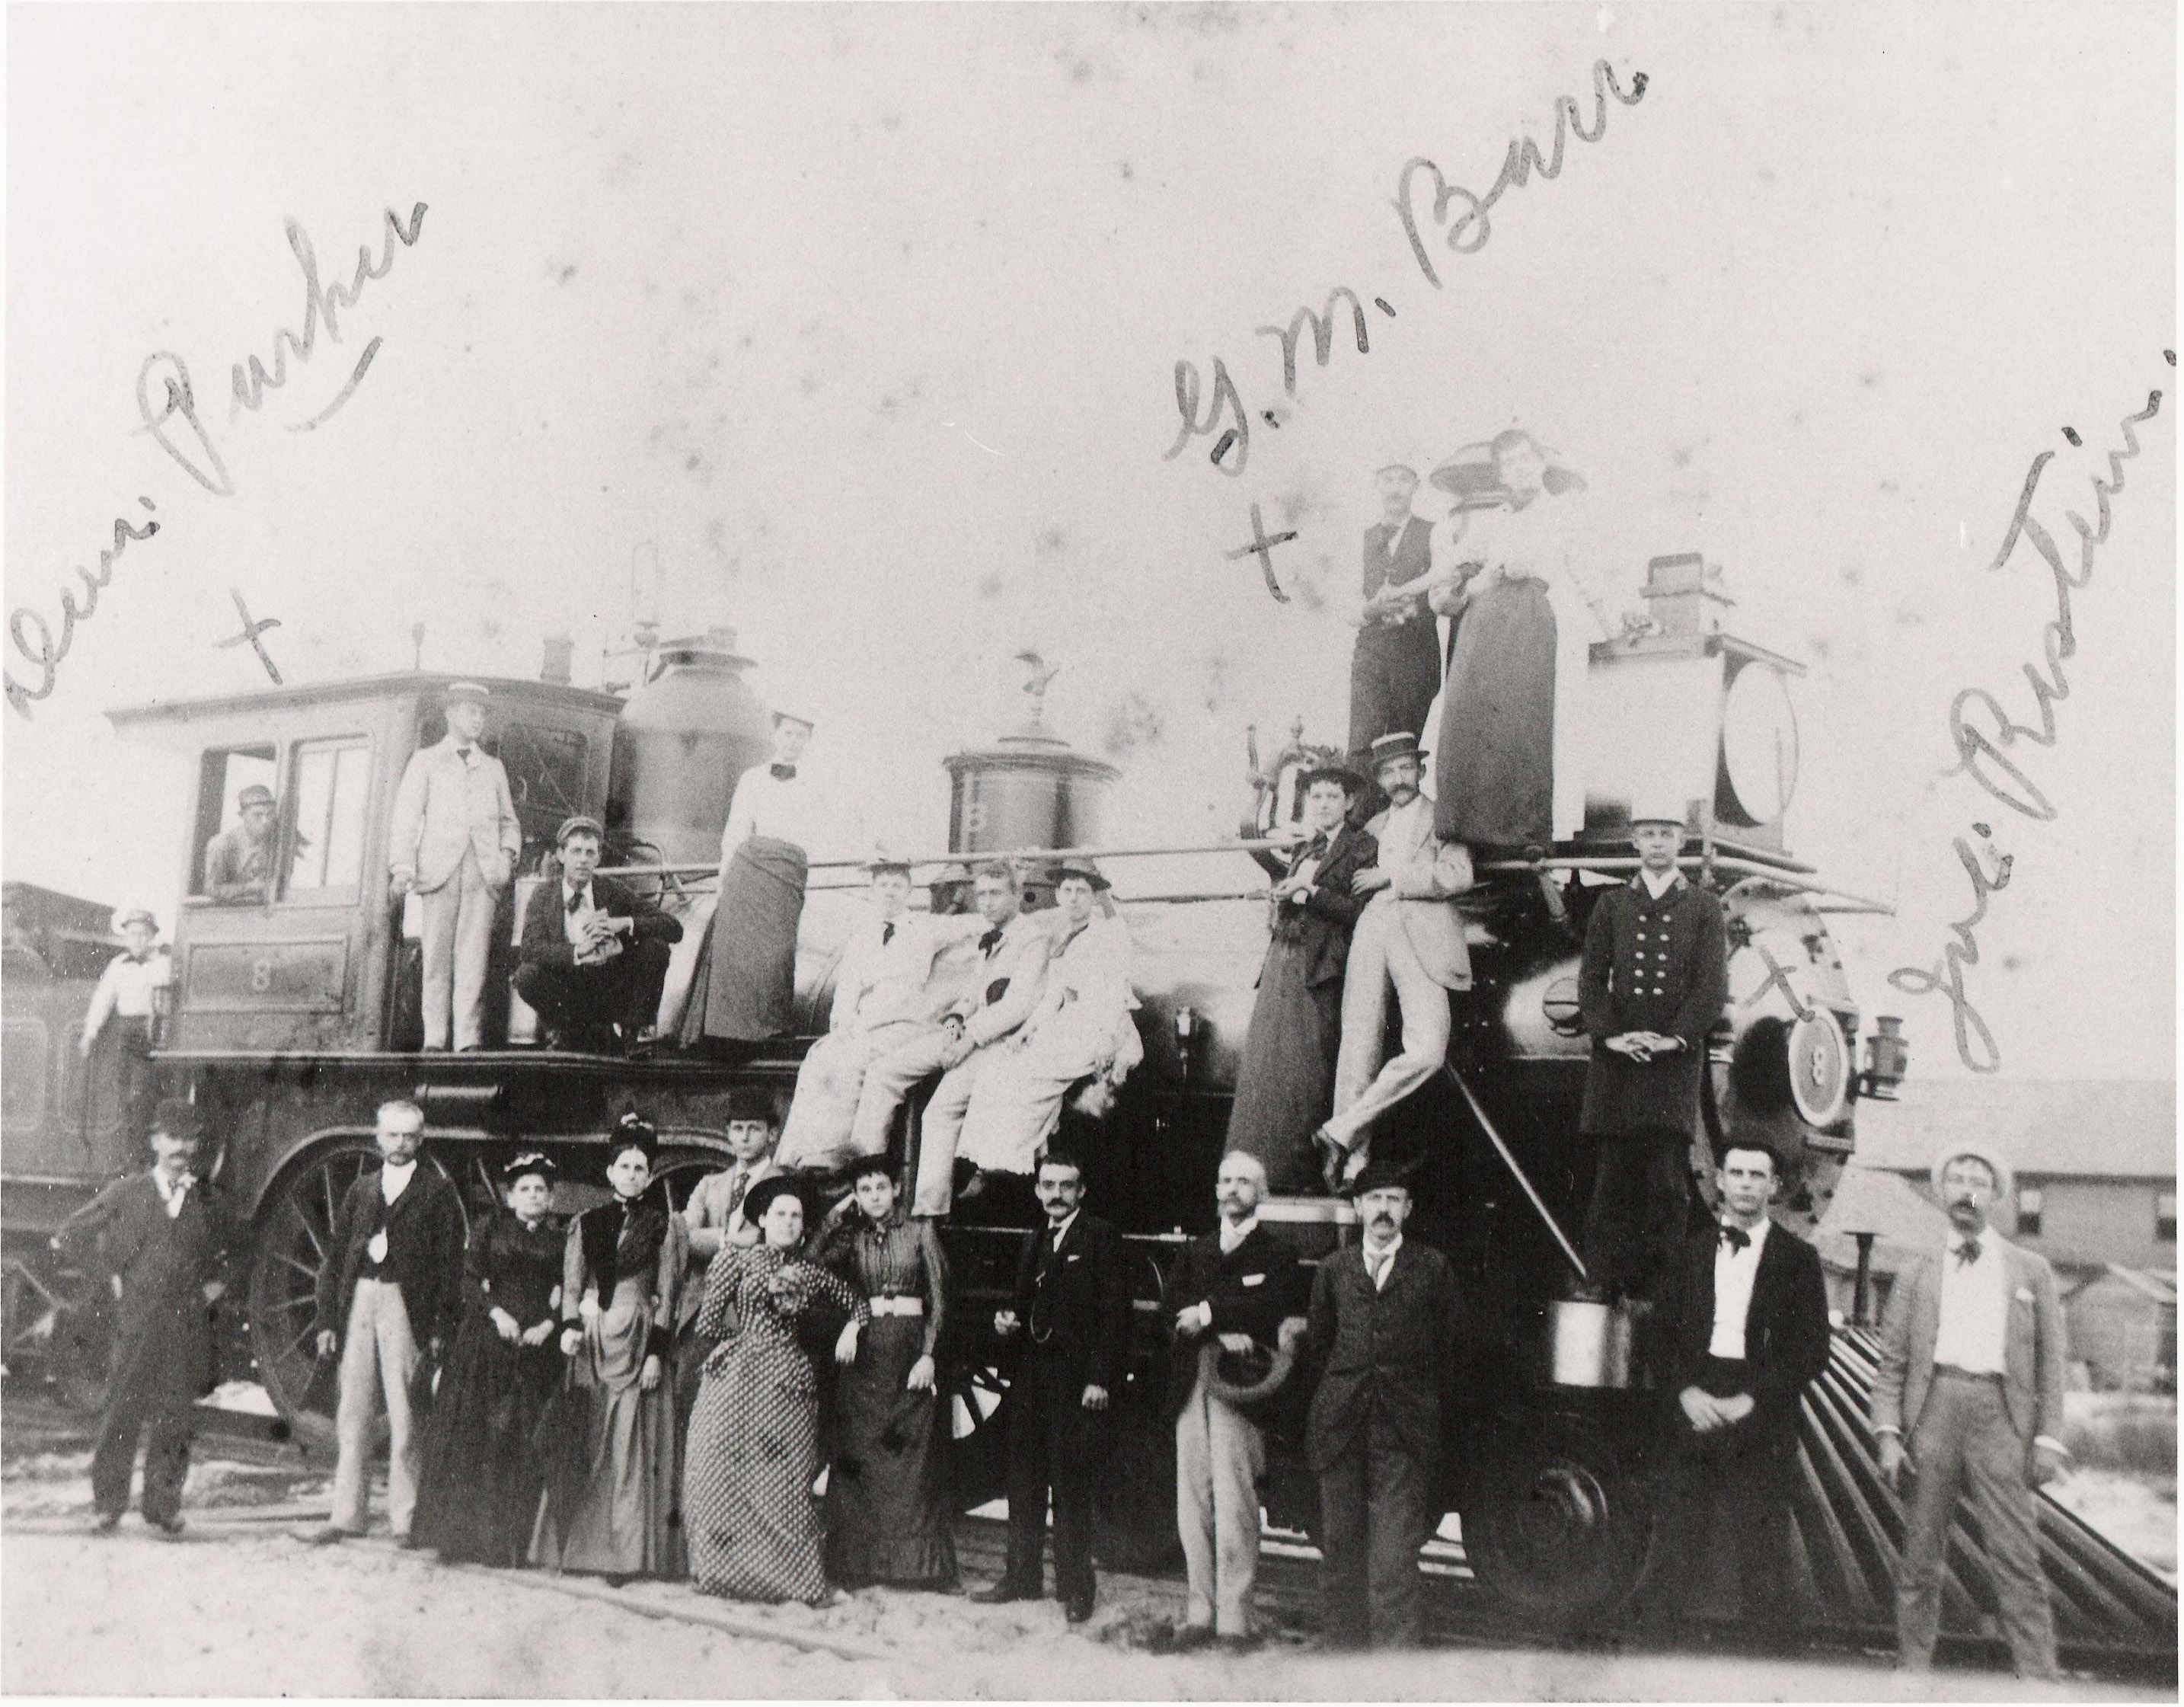 Crew of First New York, Philadelphia and Norfolk Locomotive, 1884